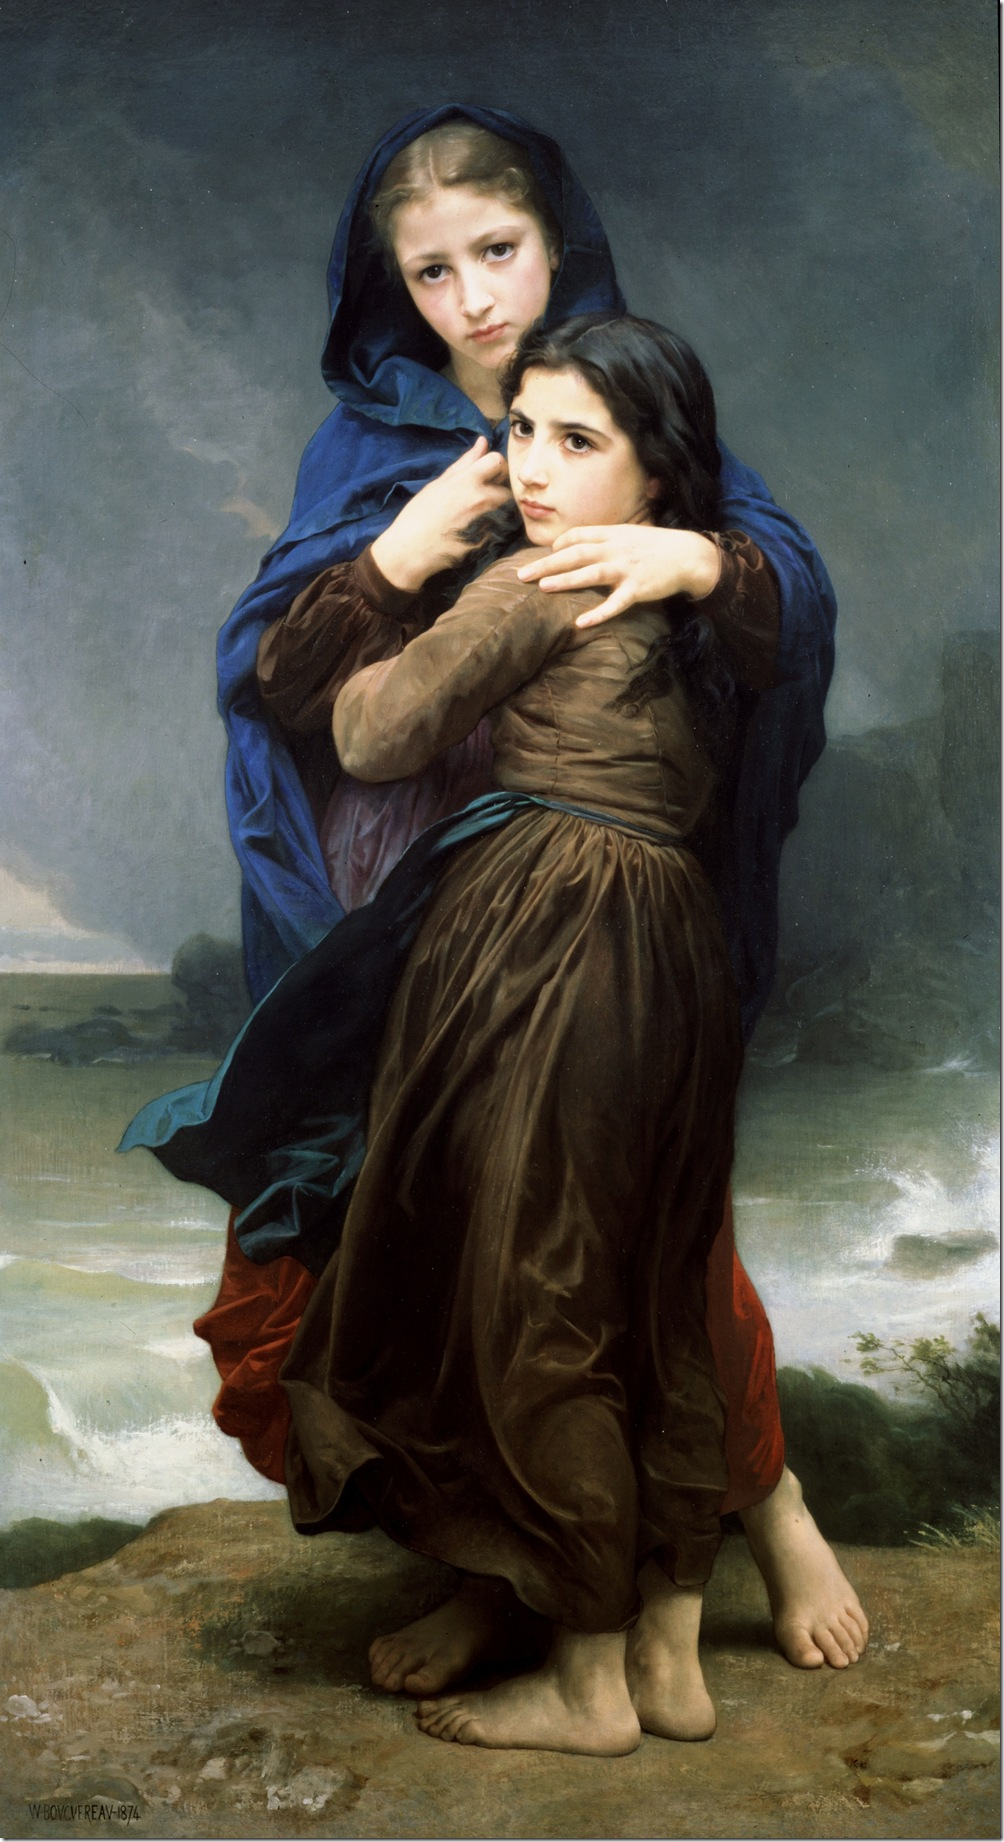 bouguereau_william_the_stormL'Orage [The Storm]1874-2